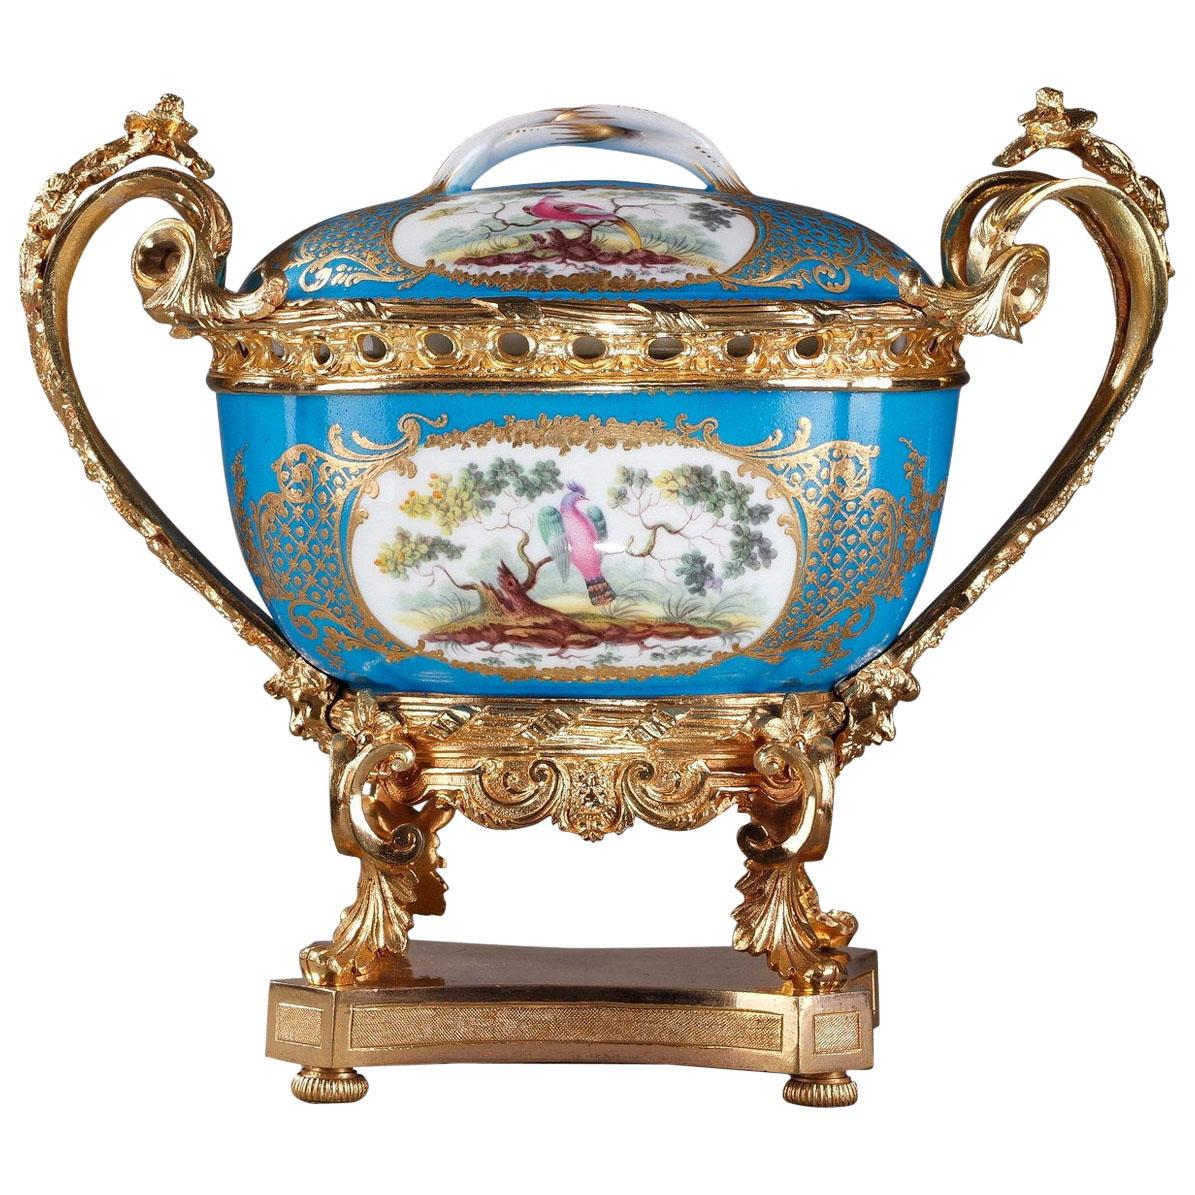 19th Century Porcelain-Mounted Covered Pot in Sevres Style